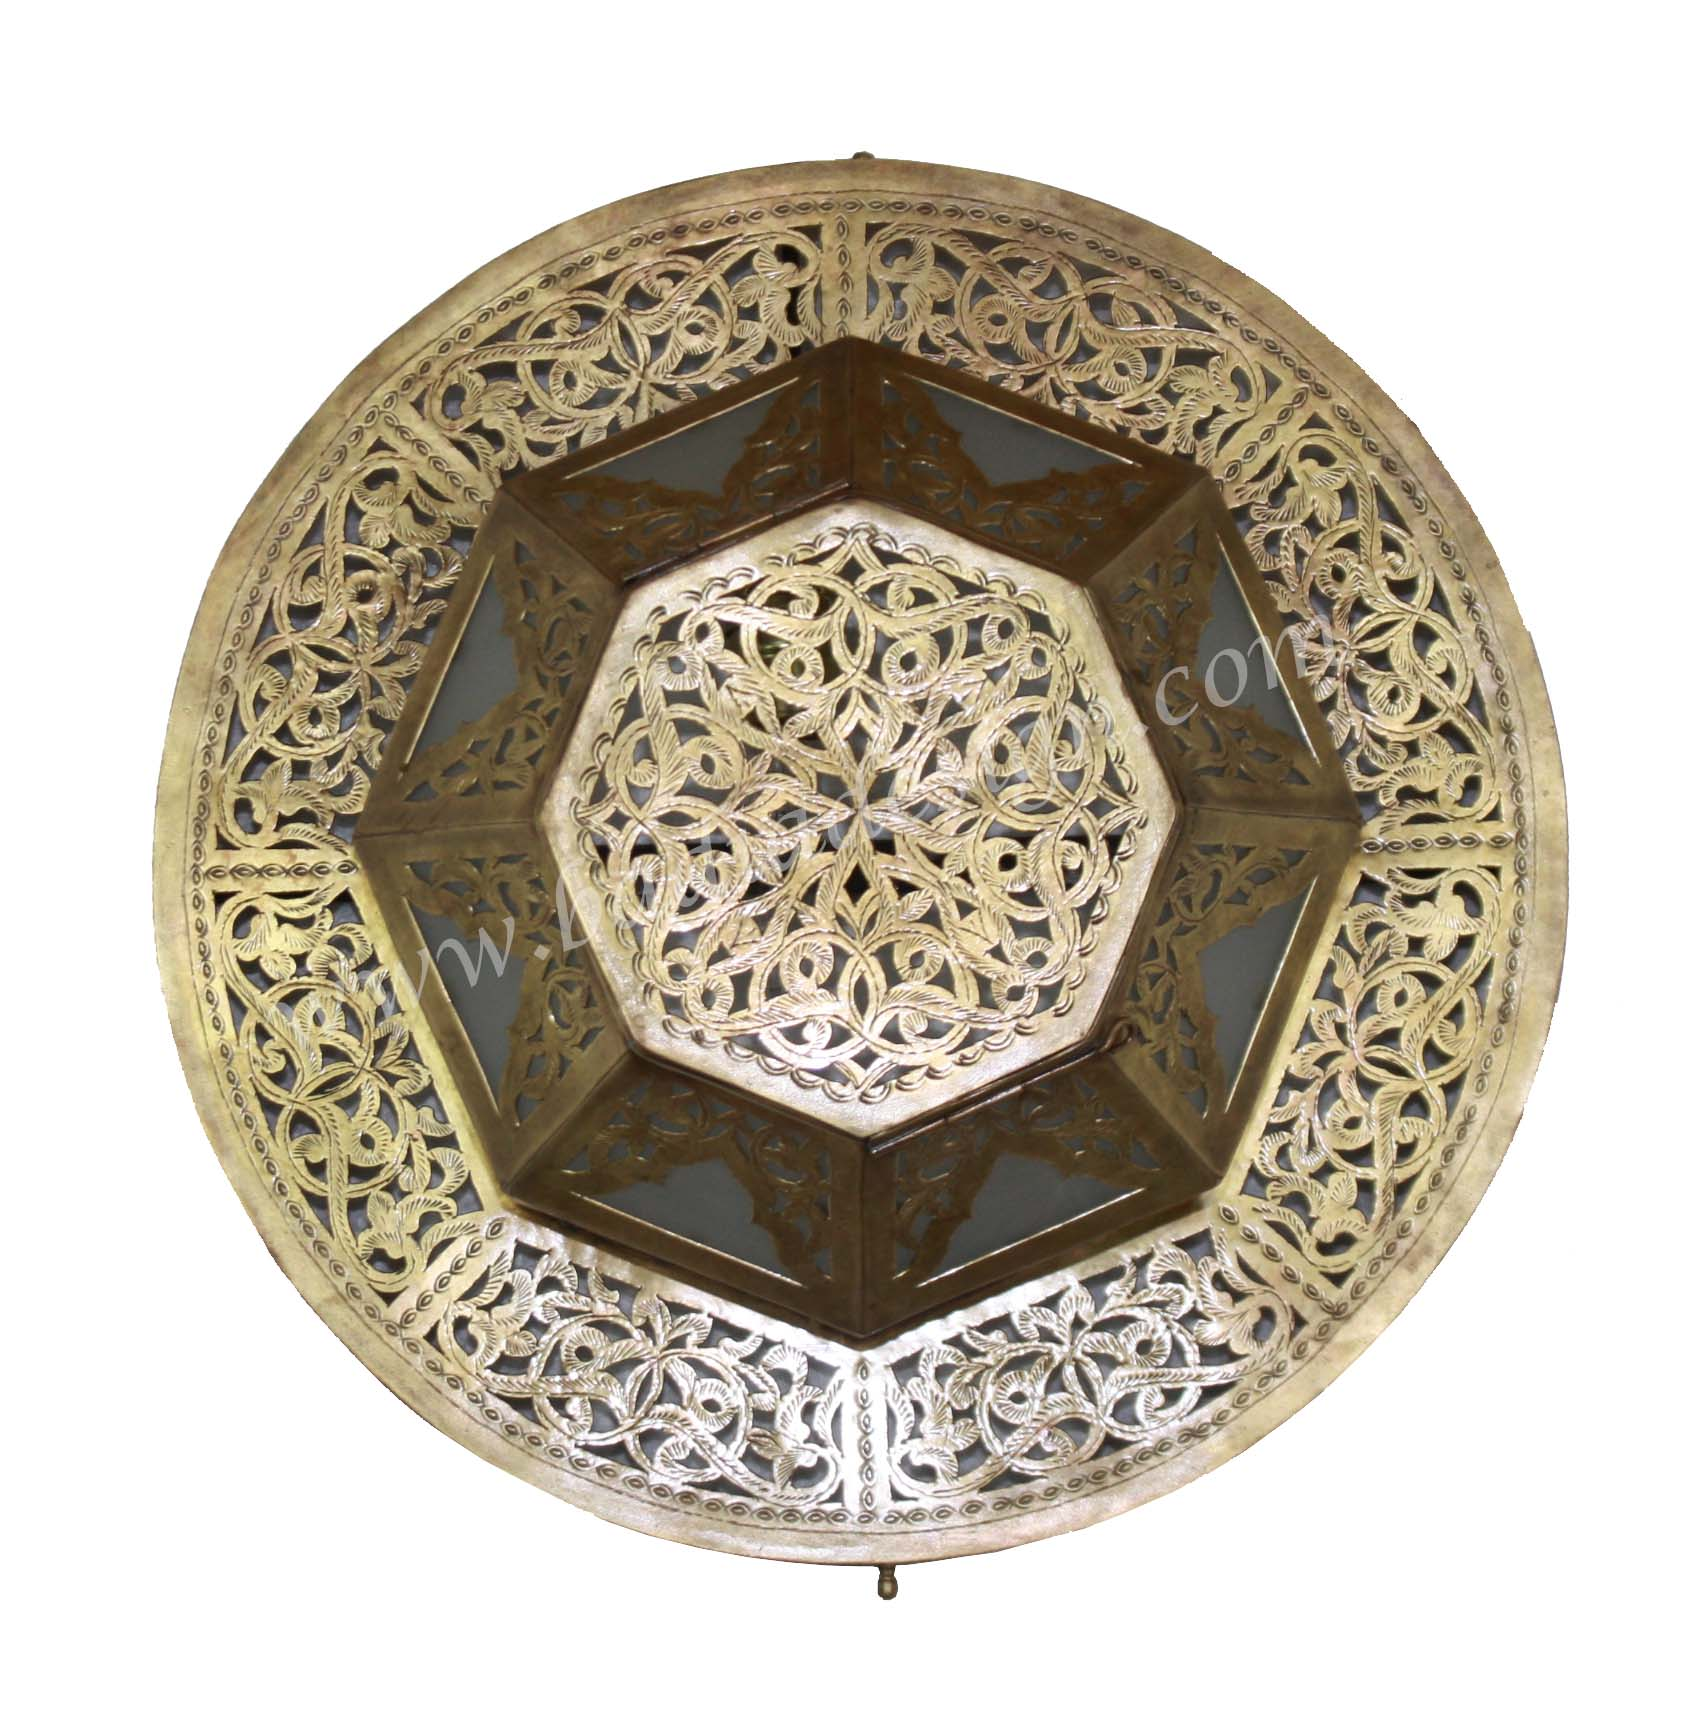 moroccan-brass-wall-sconce-with-white-glass-wl201-2.jpg